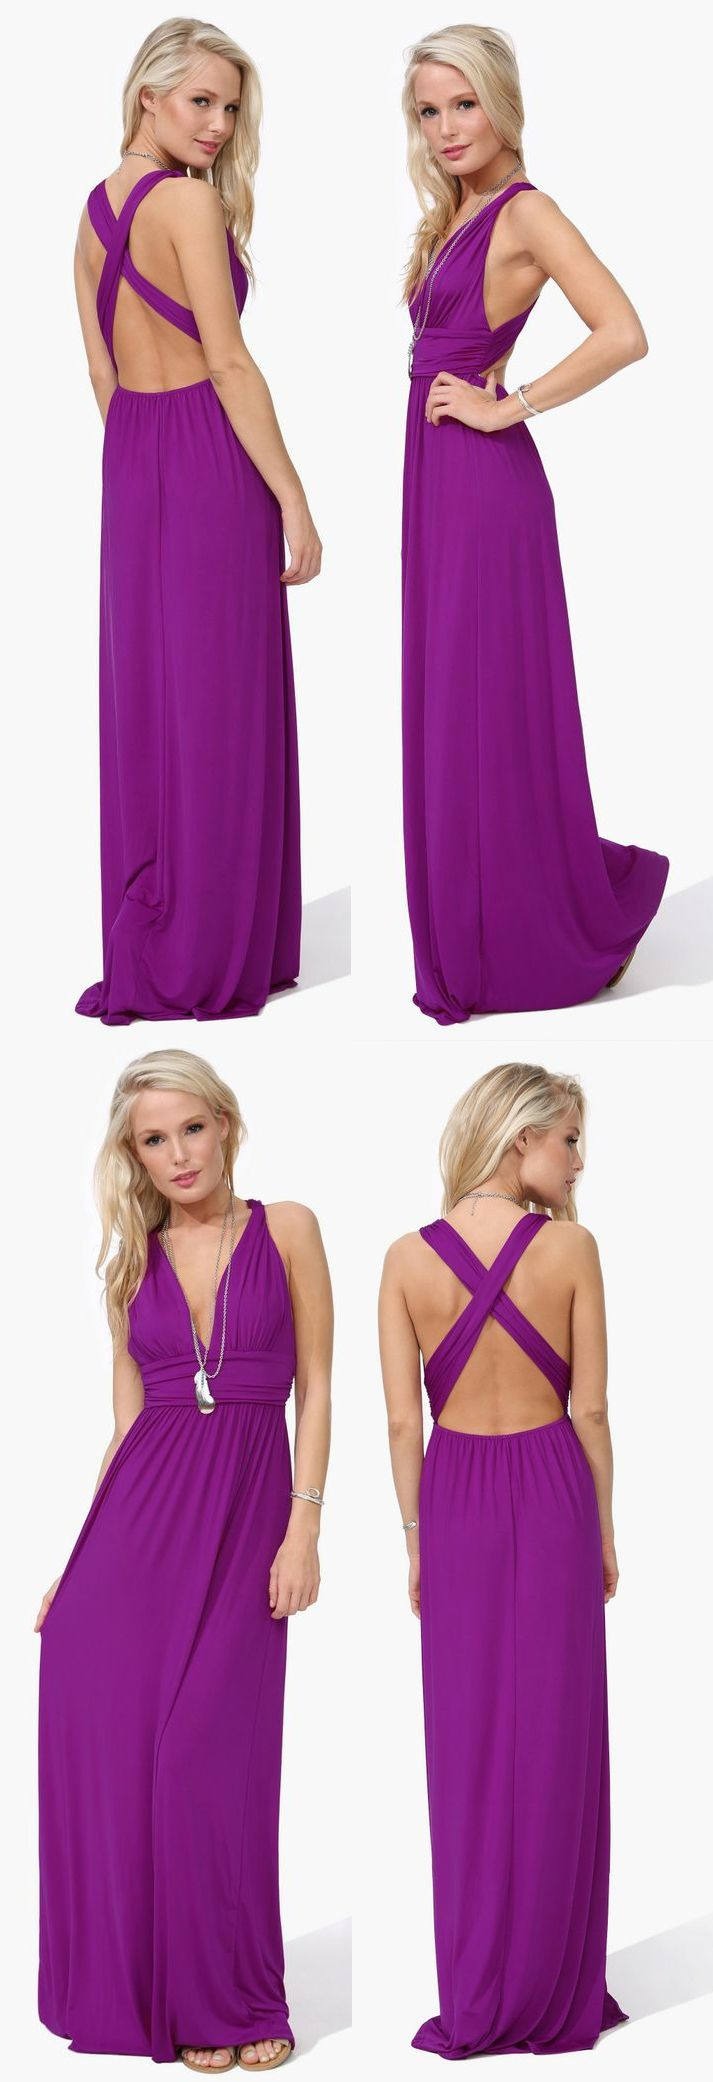 Love this Maxi Dress but I just wish it wasn't so bright (or an entirely different, neutral color). Great shape though!